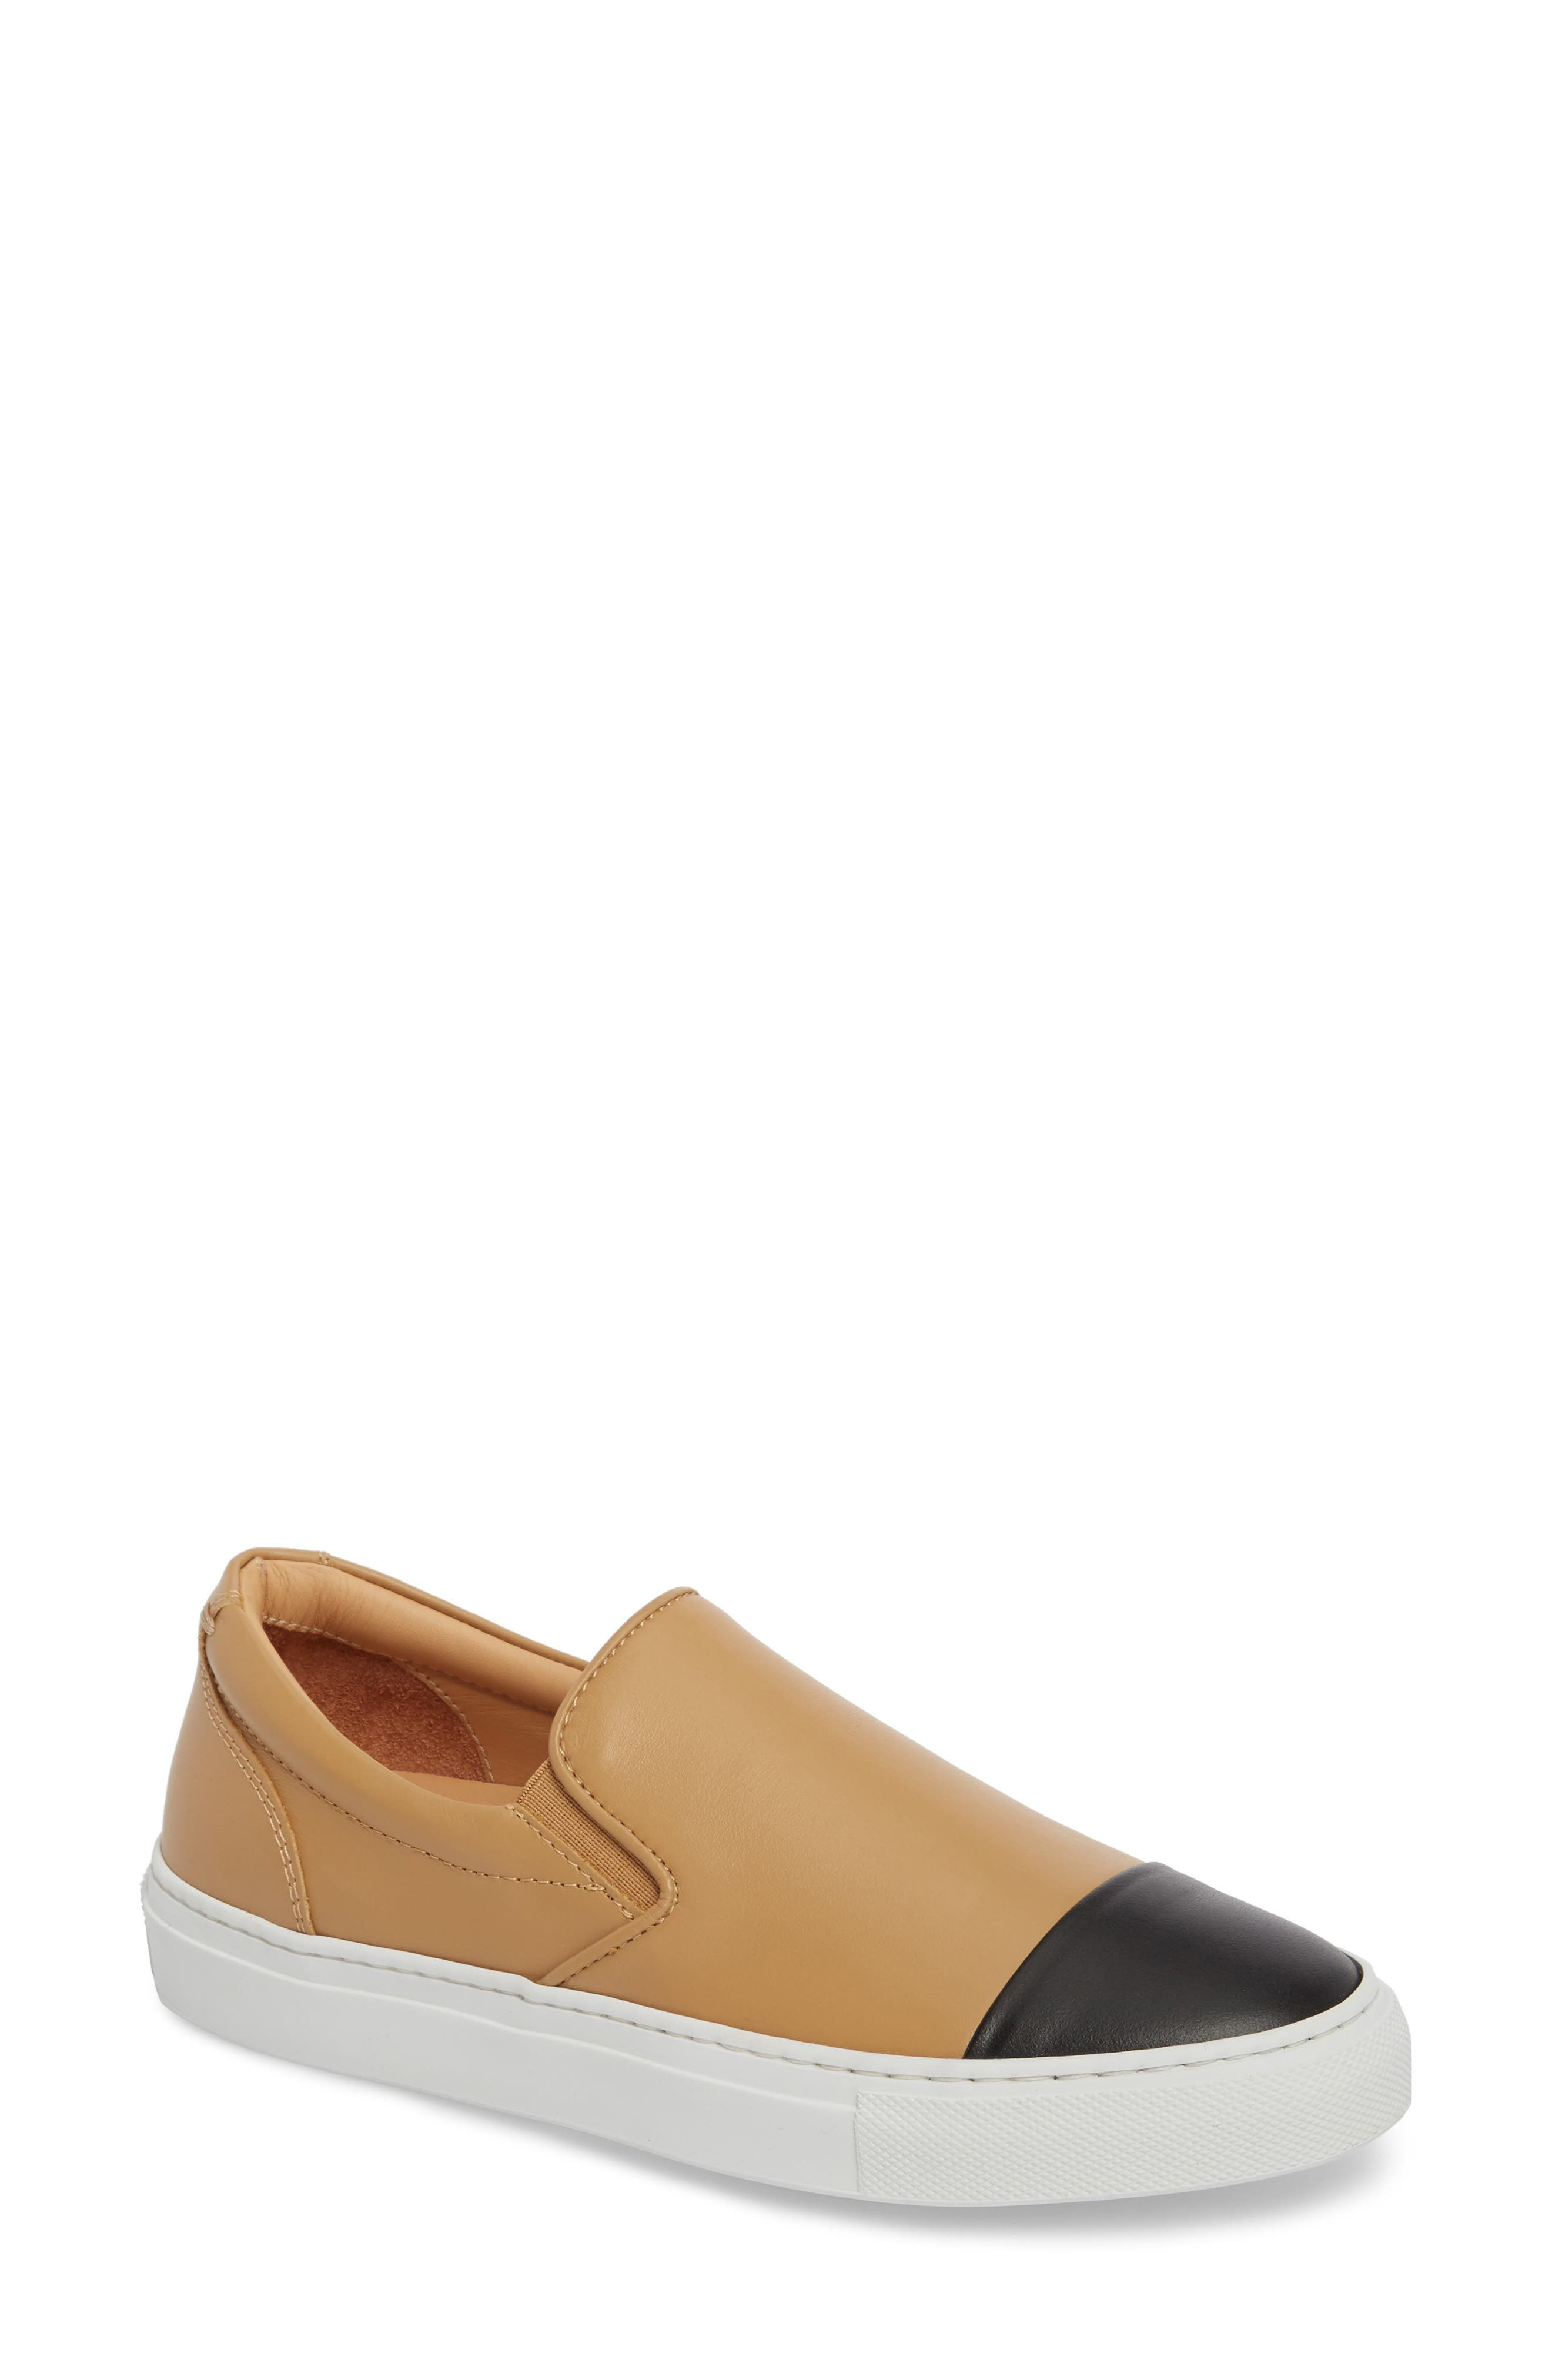 Wooster Cap Toe Slip-On Sneaker,                         Main,                         color, Almond